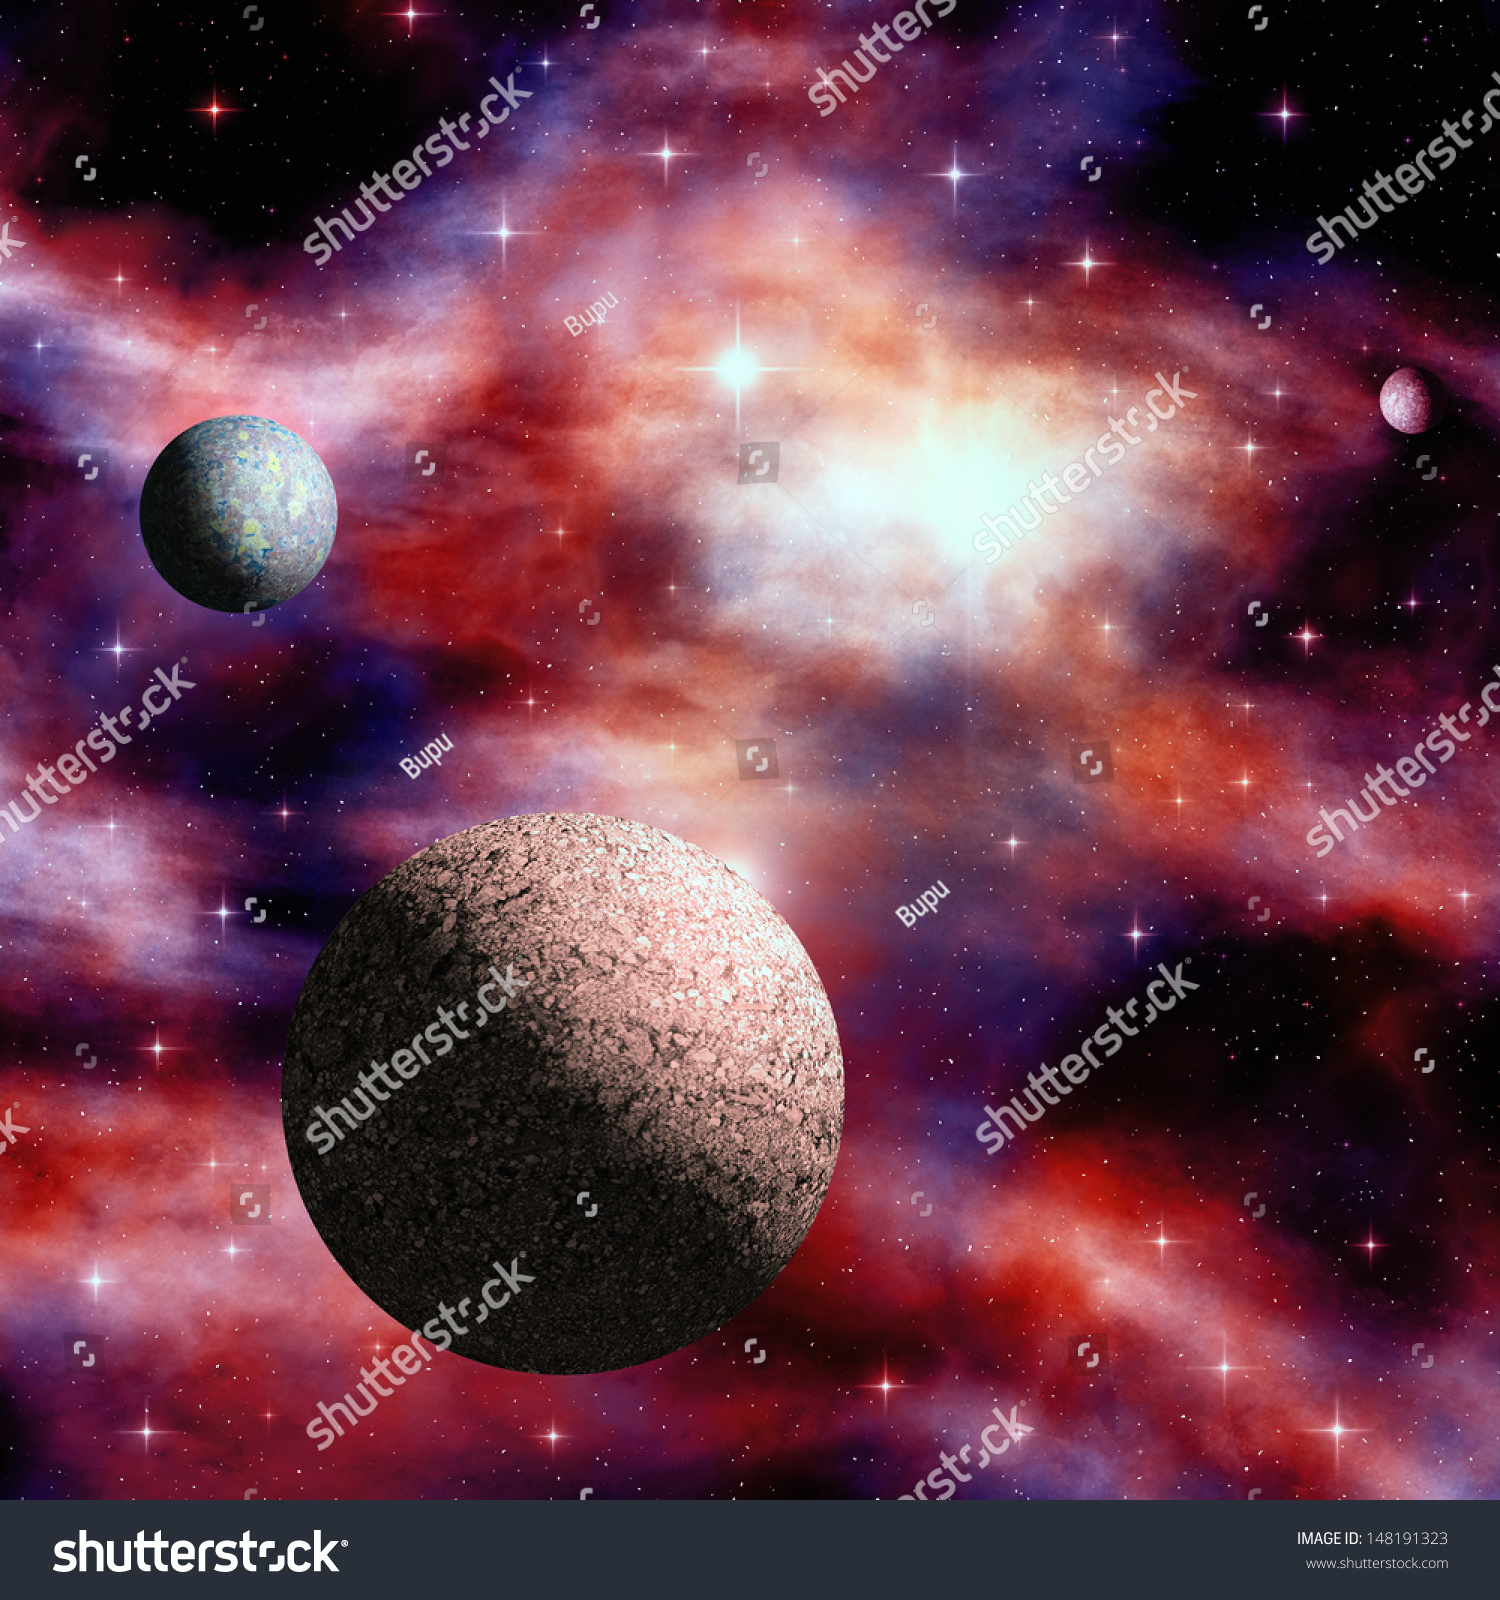 Space Nebula With Stars And Orbiting Planets Stock Photo ...